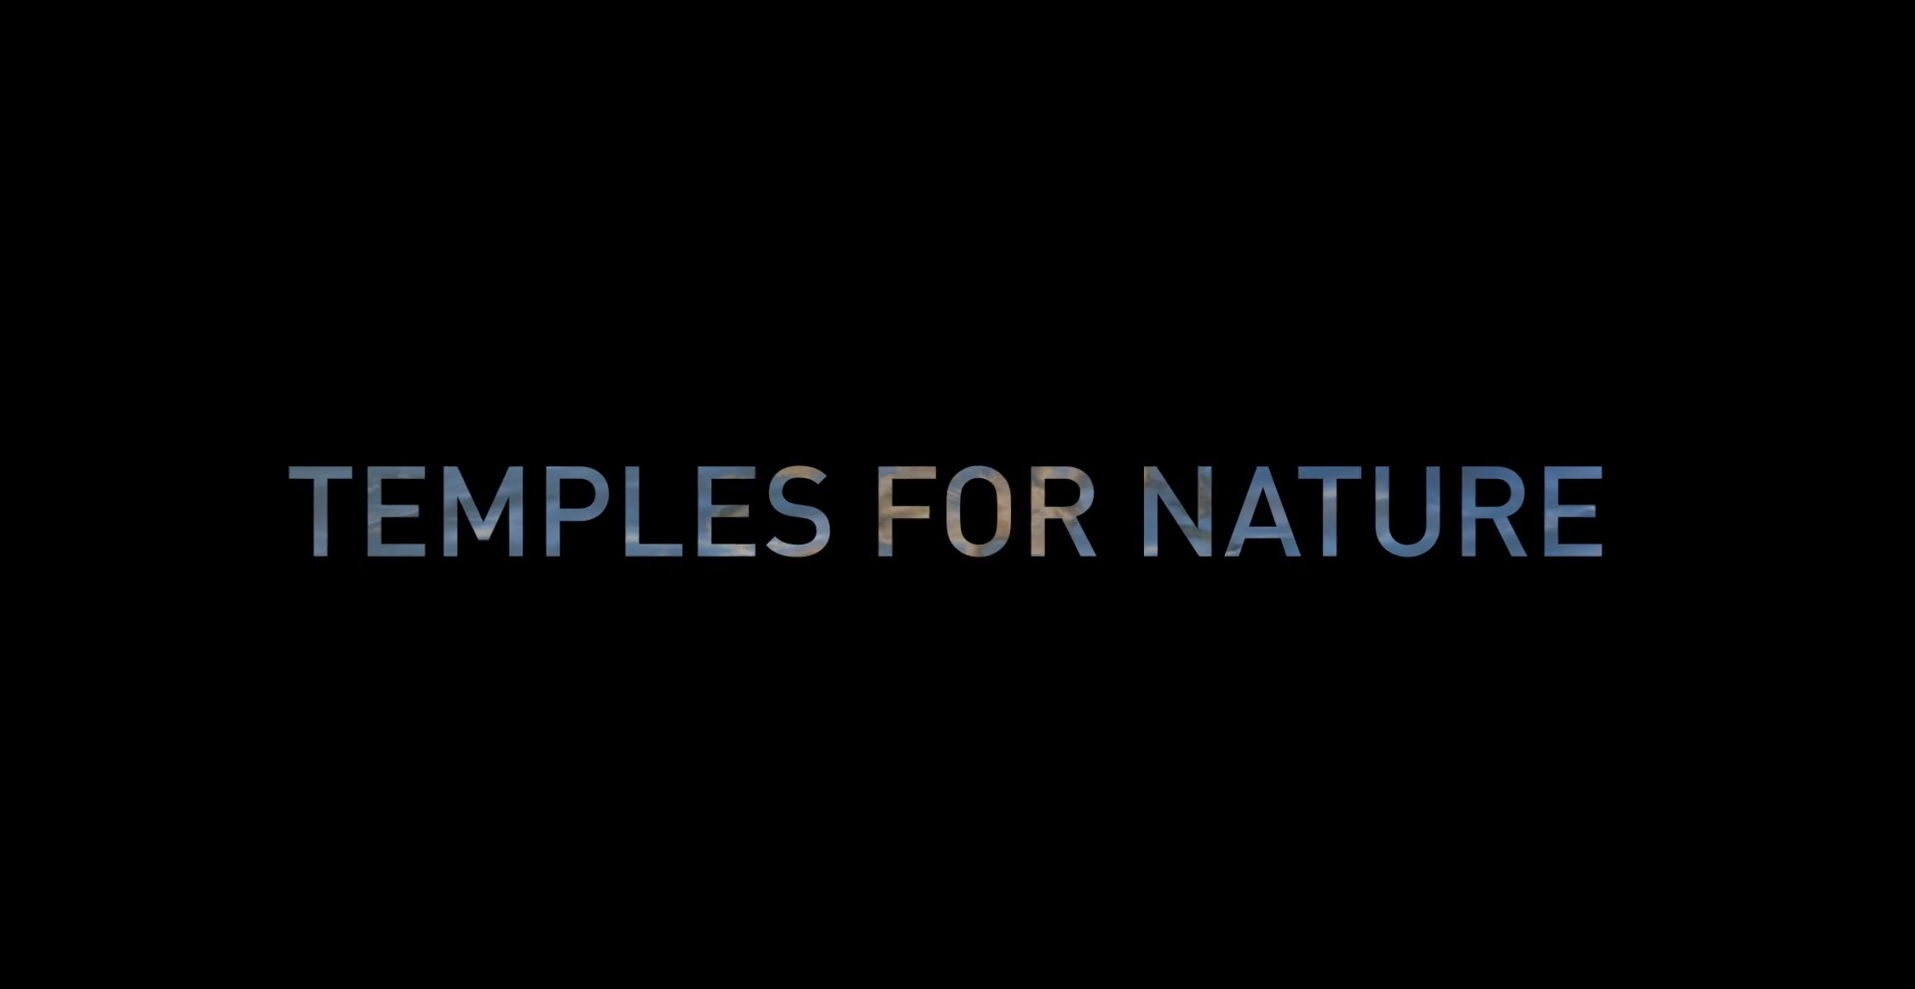 Earth Stations Hospitality: Temples for Nature 2017